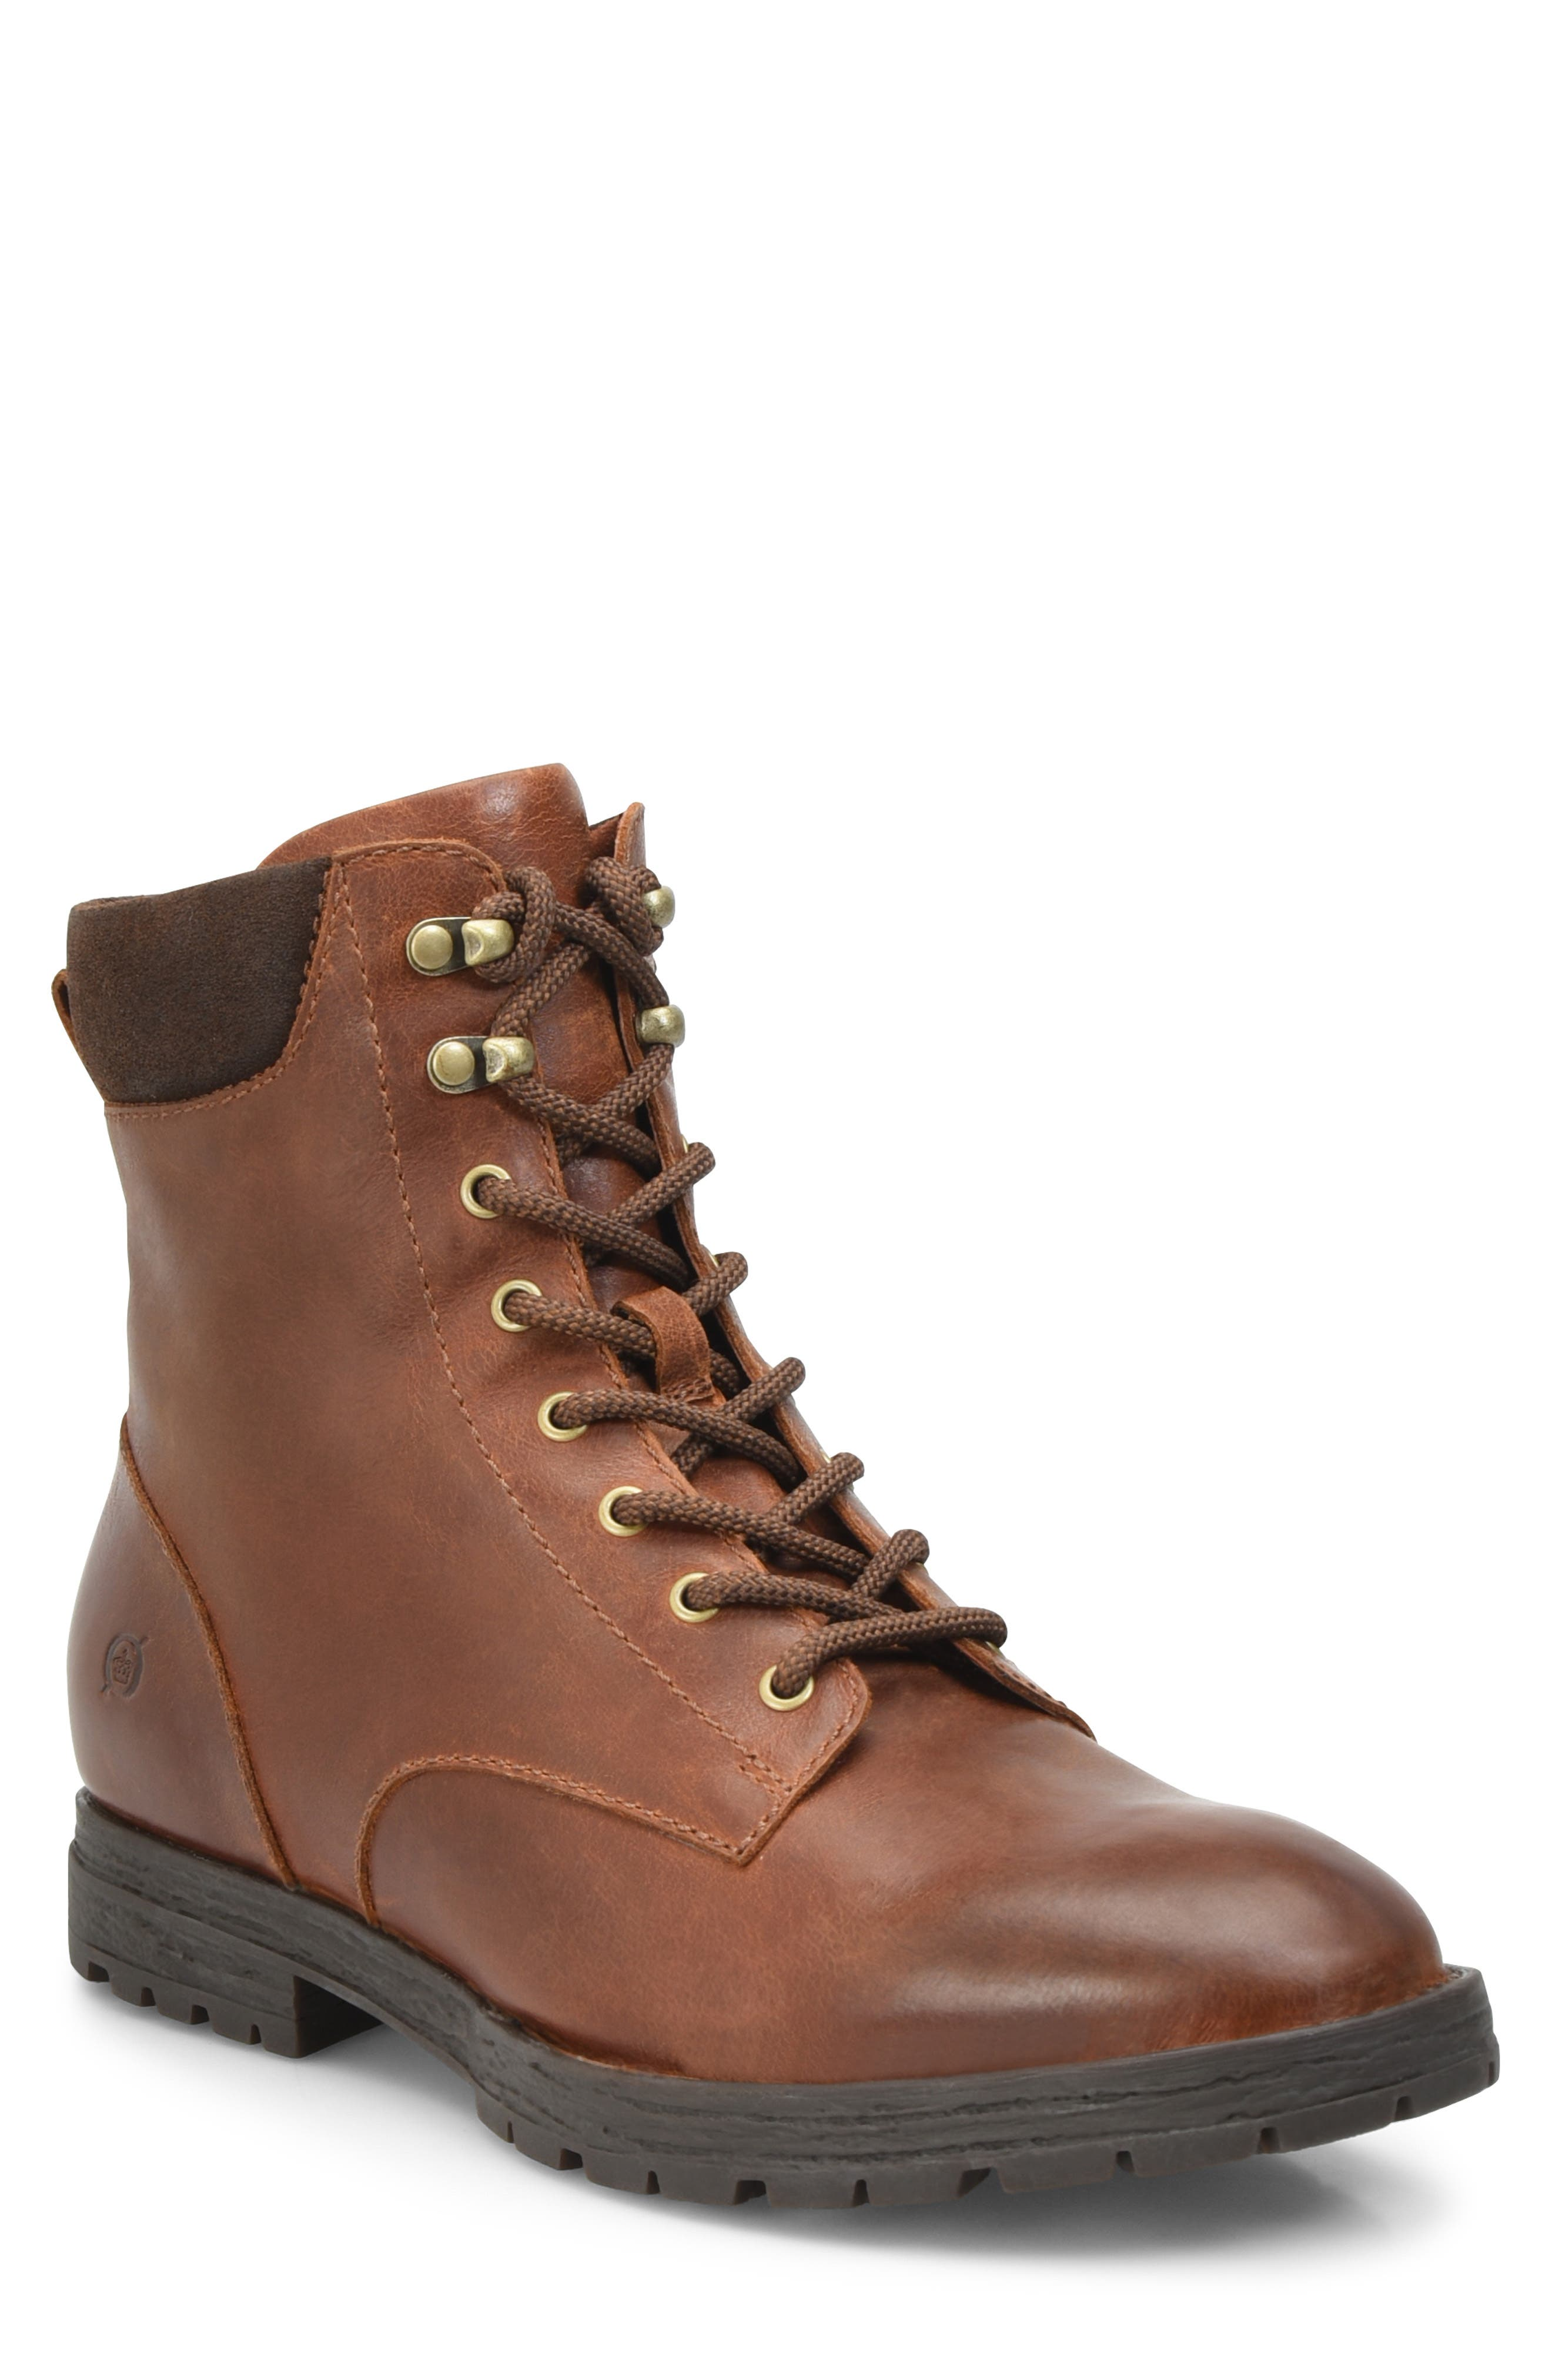 B?rn Pike Waterproof Lace-Up Boot- Brown